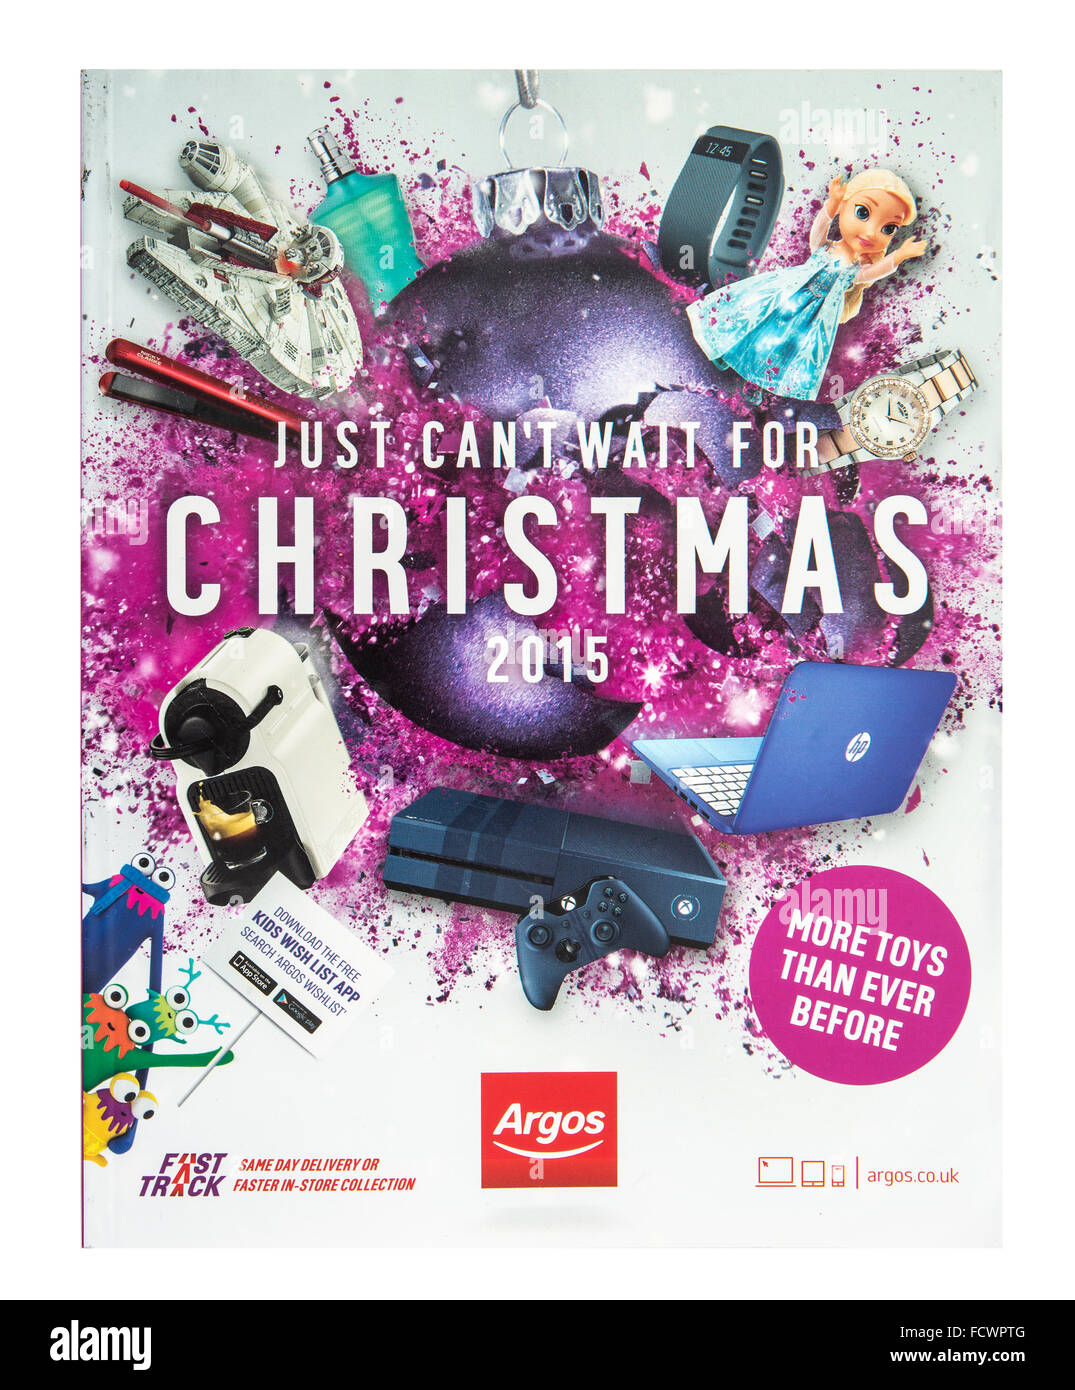 Argos Just Cant Wait For Christmas 2015 Catalogue on a white Background - Stock Image